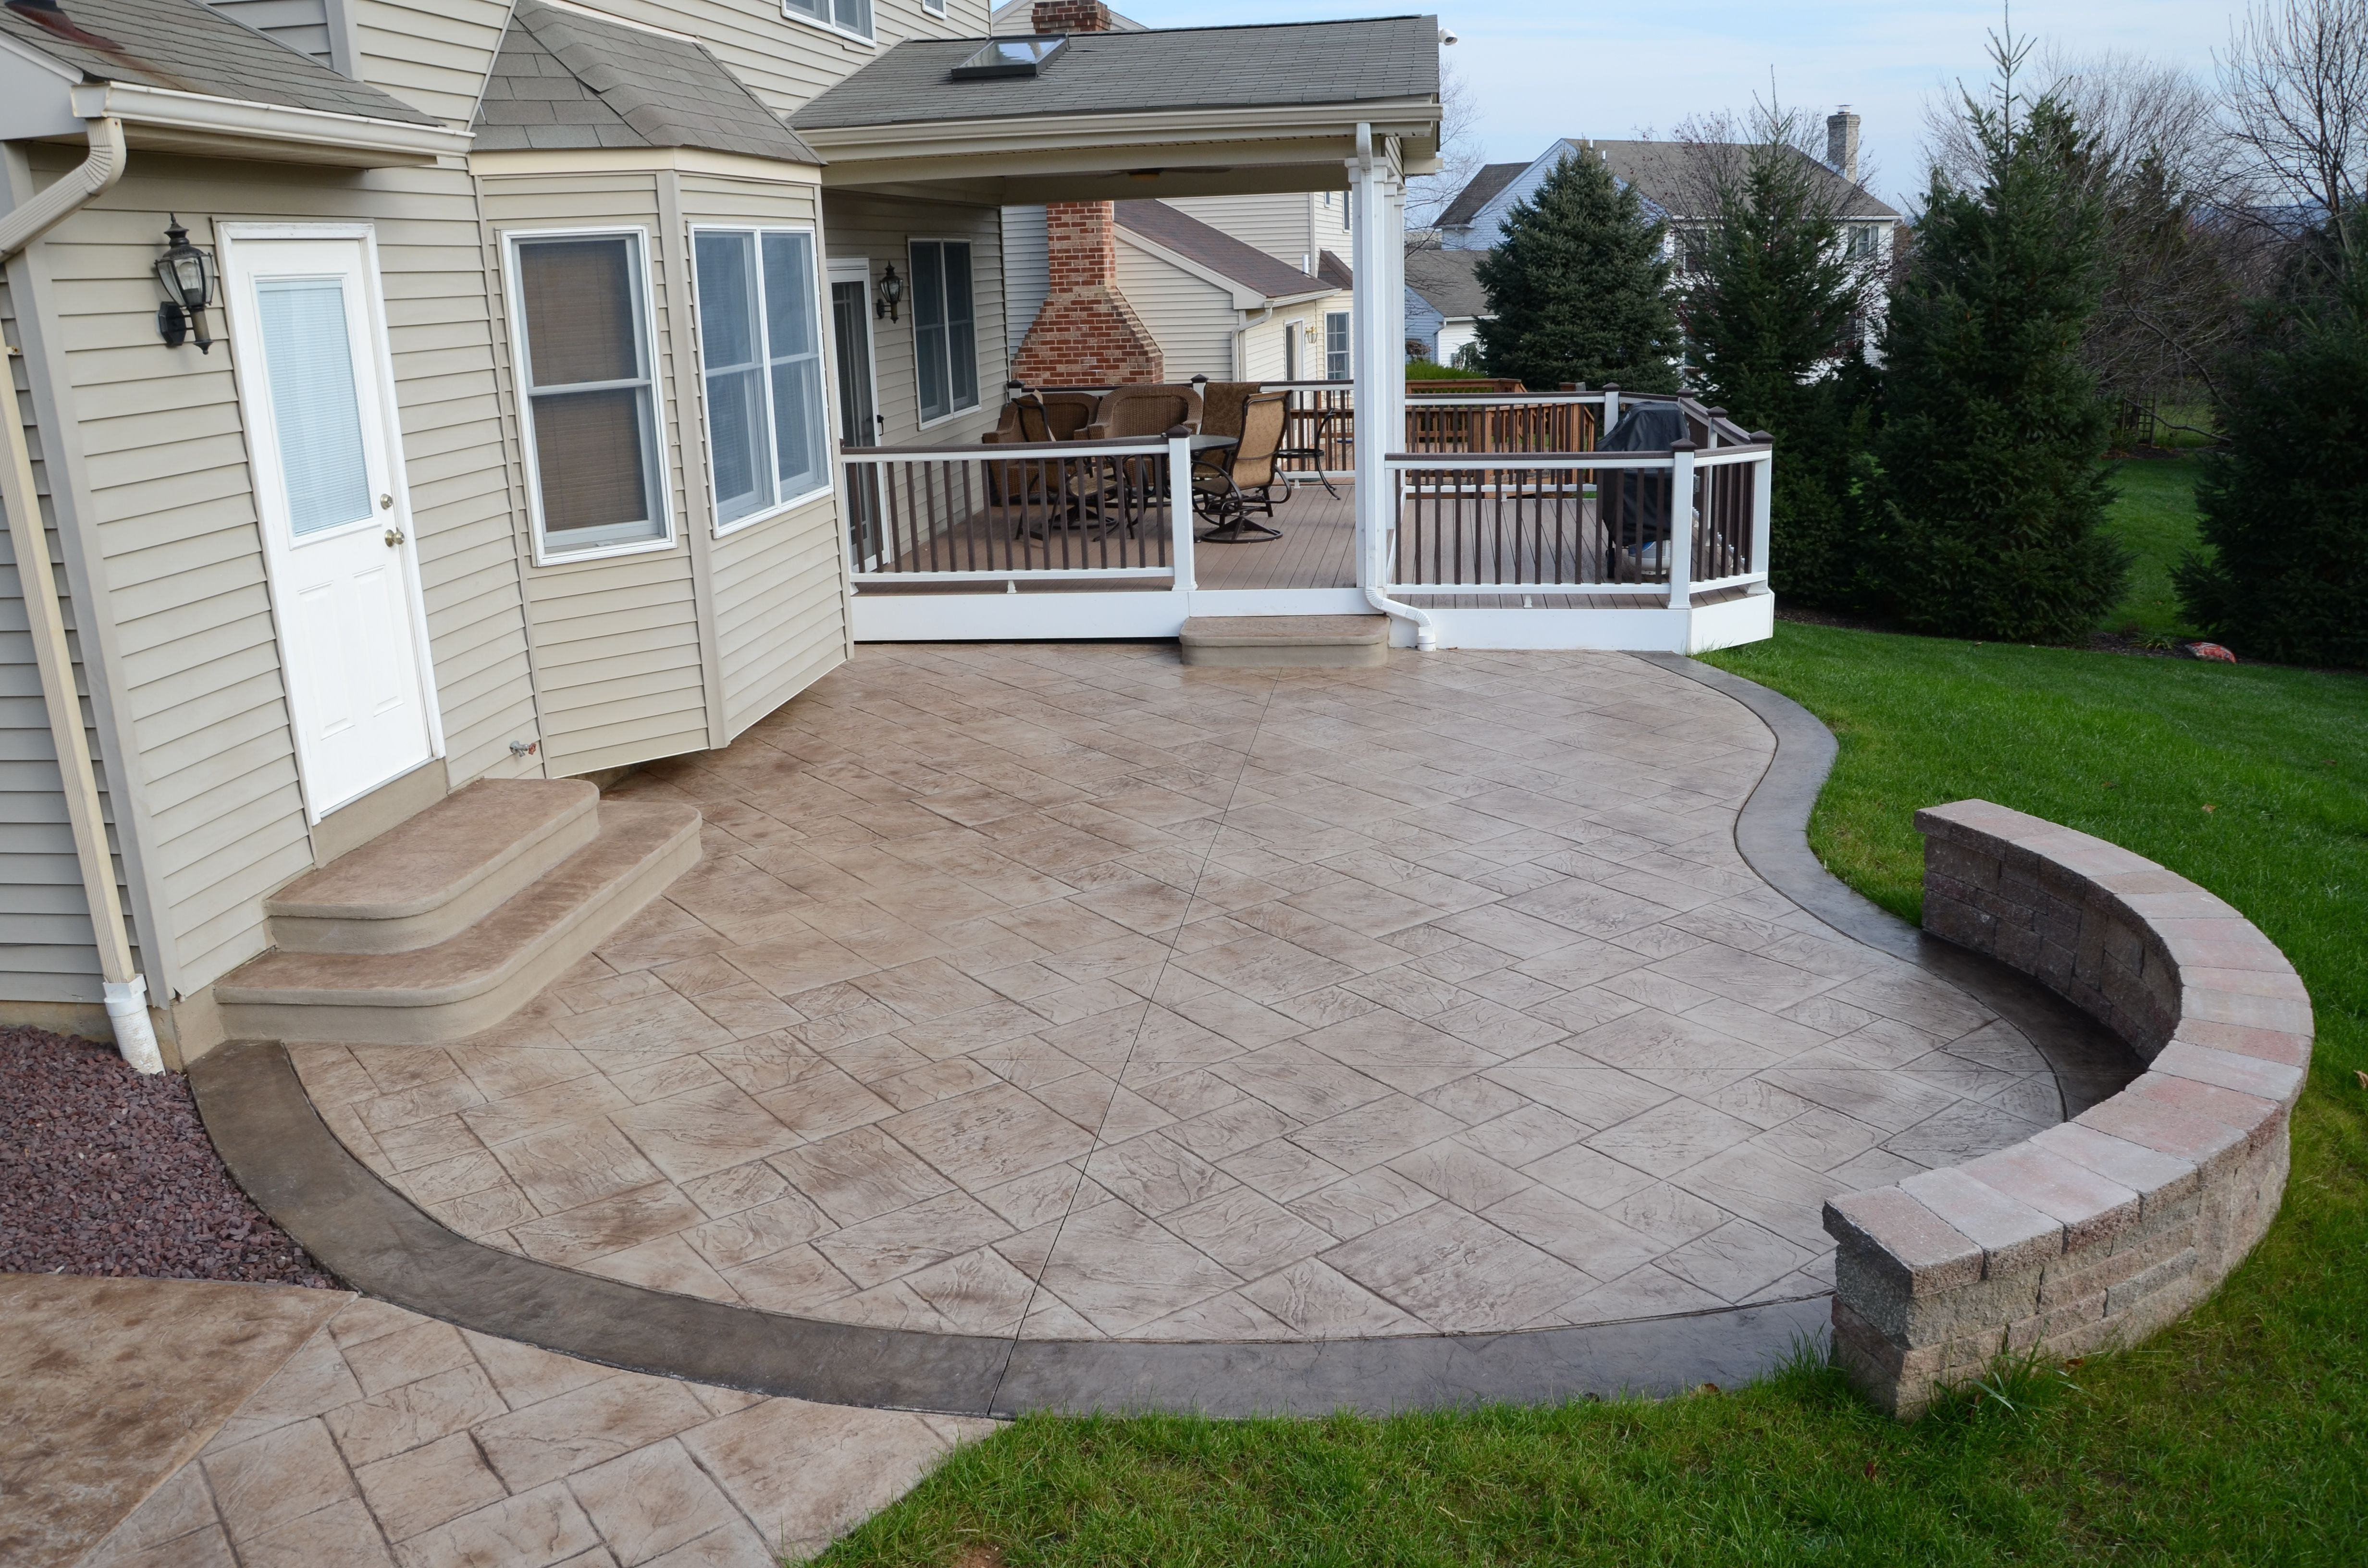 Traditional House Exterior Design With Simple Stamped Concrete